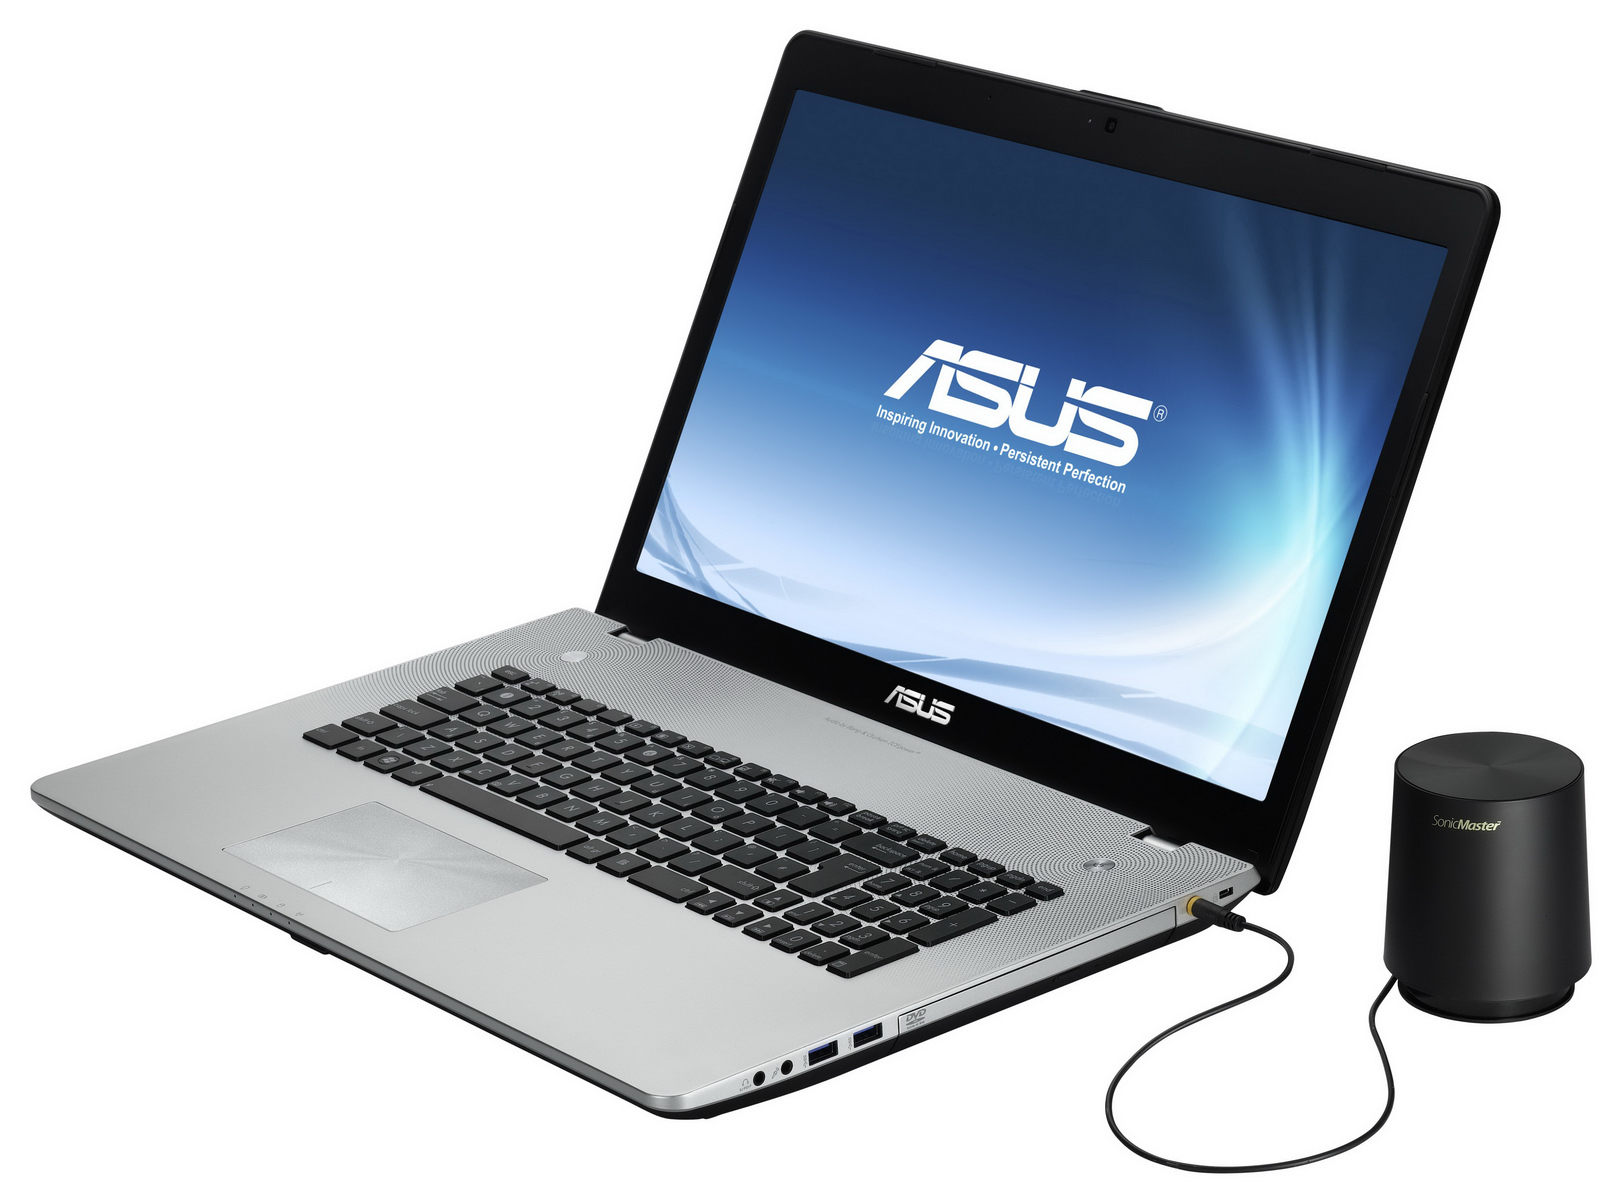 ASUS N76VZ with OSX ML | tonymacx86.com